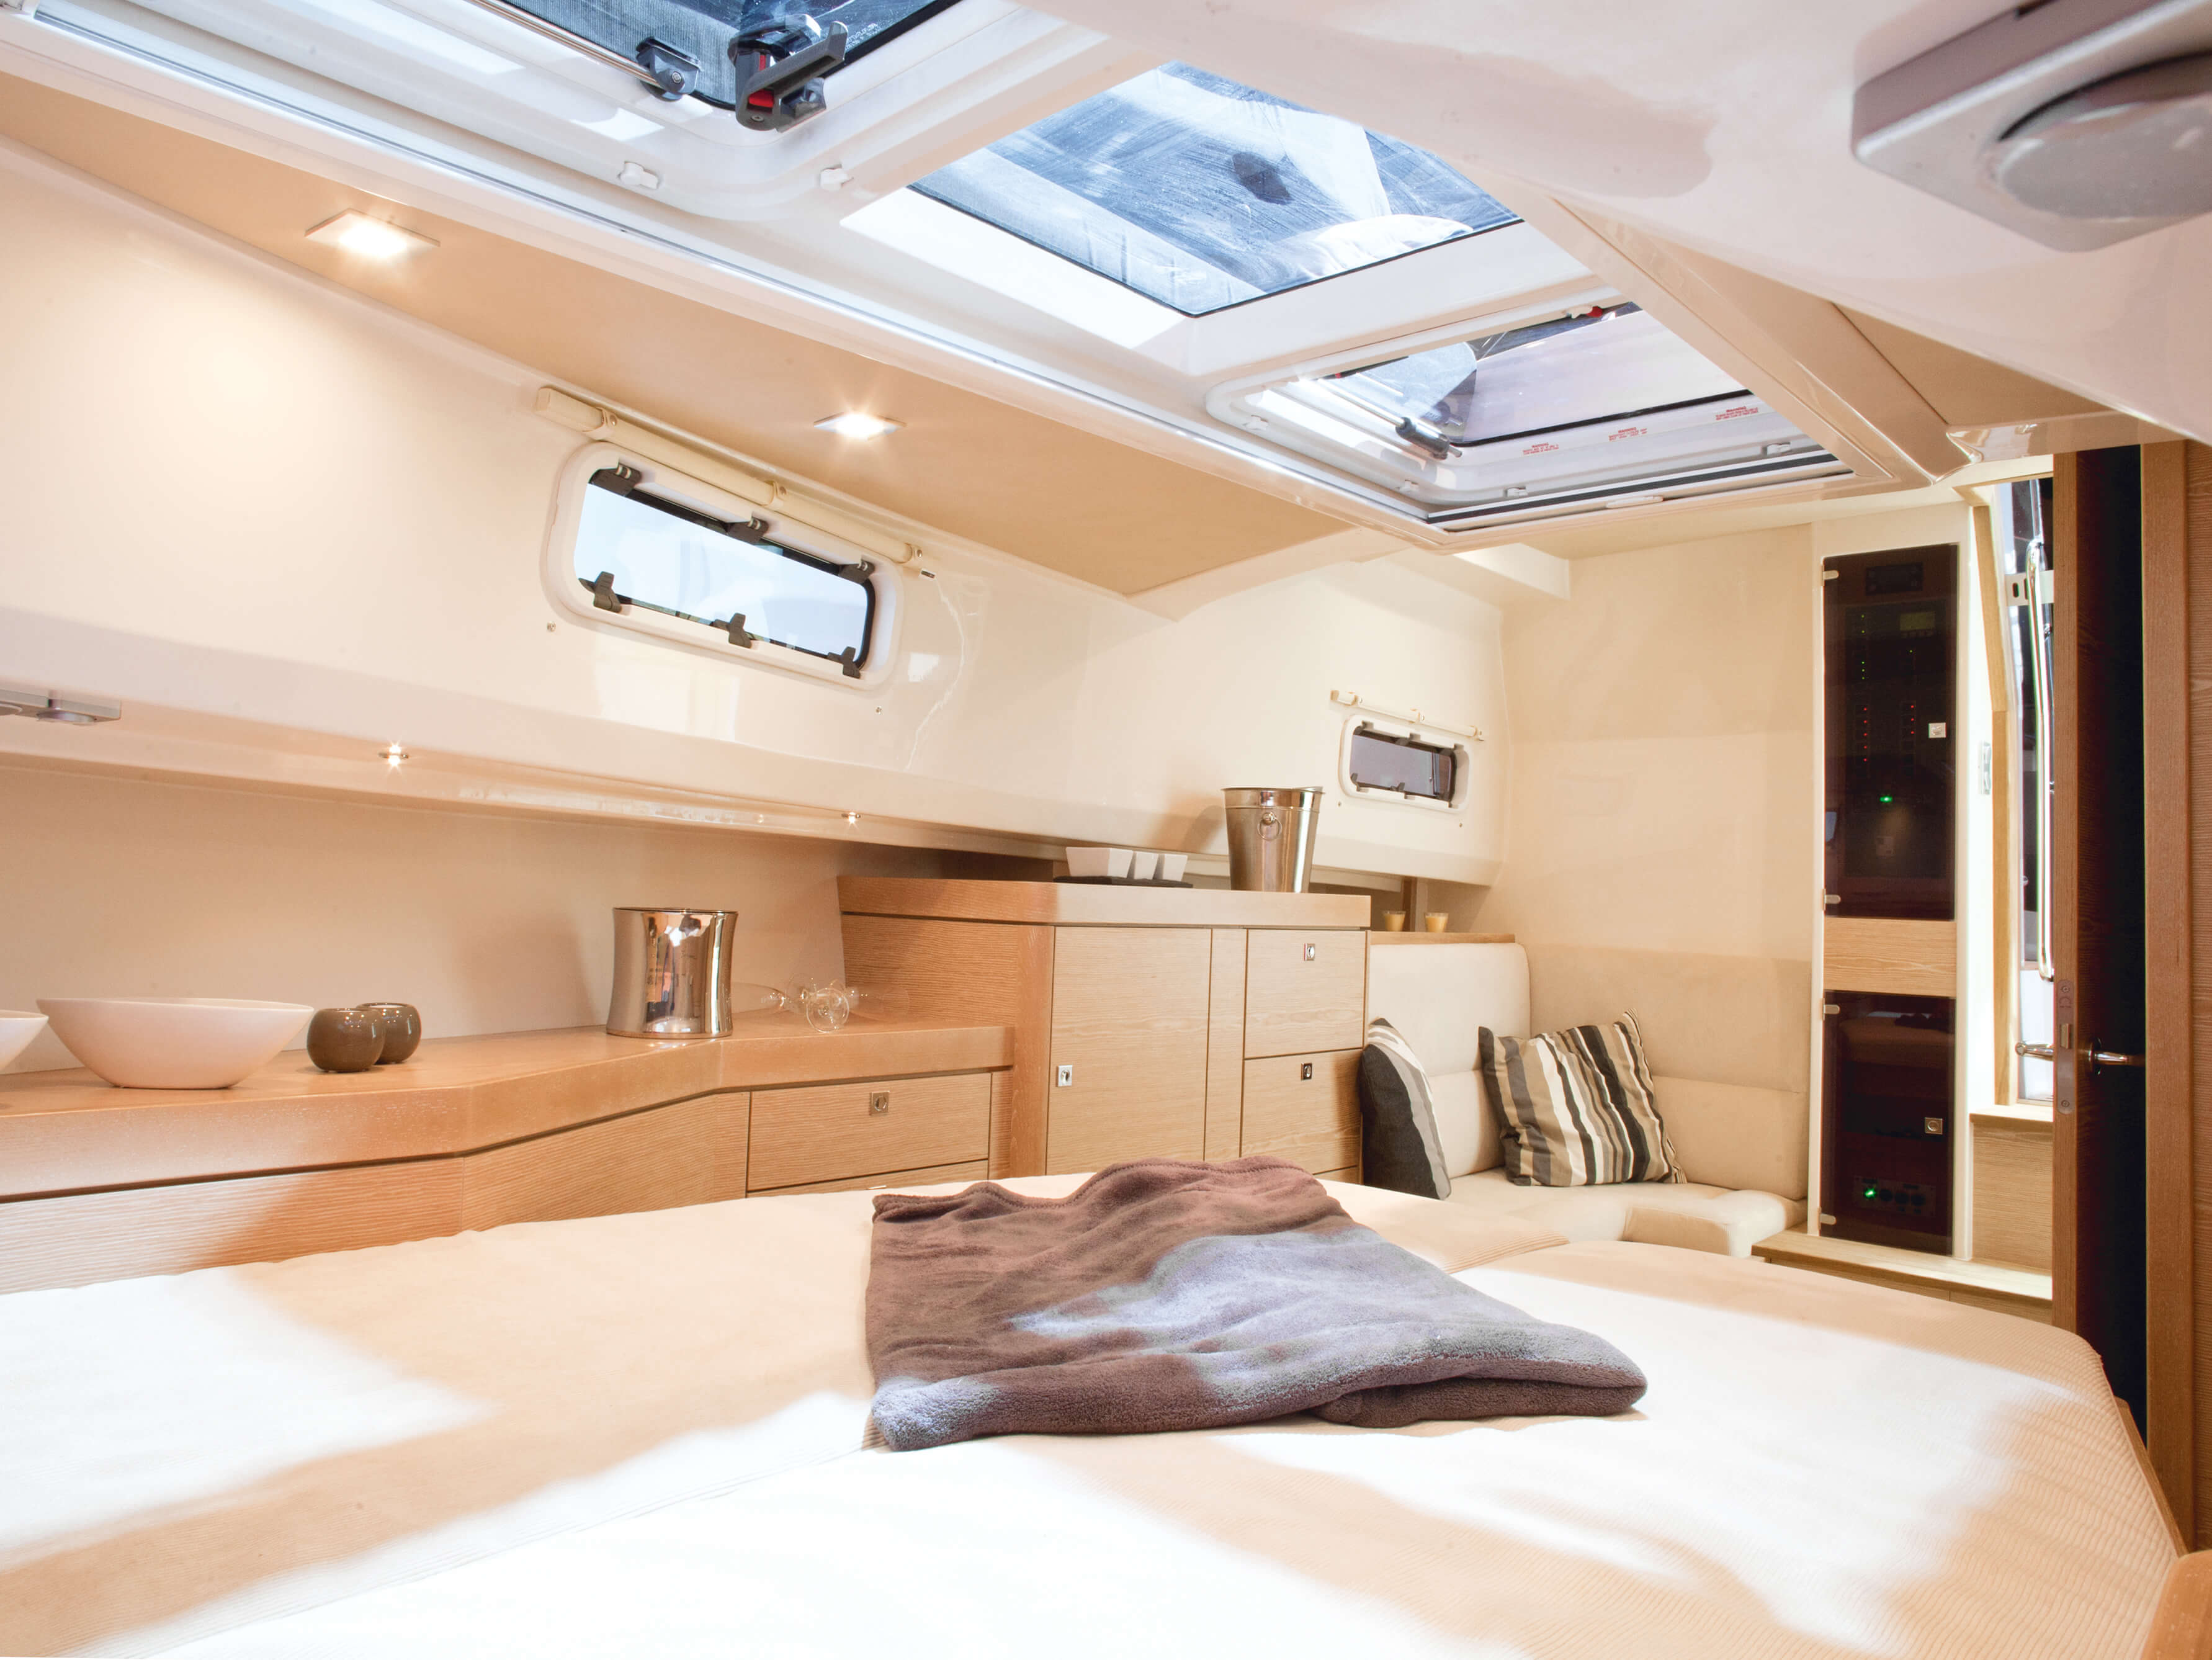 Fjord 40 open Interior view cabin | double bed, lounge-area, storage compartement | Fjord